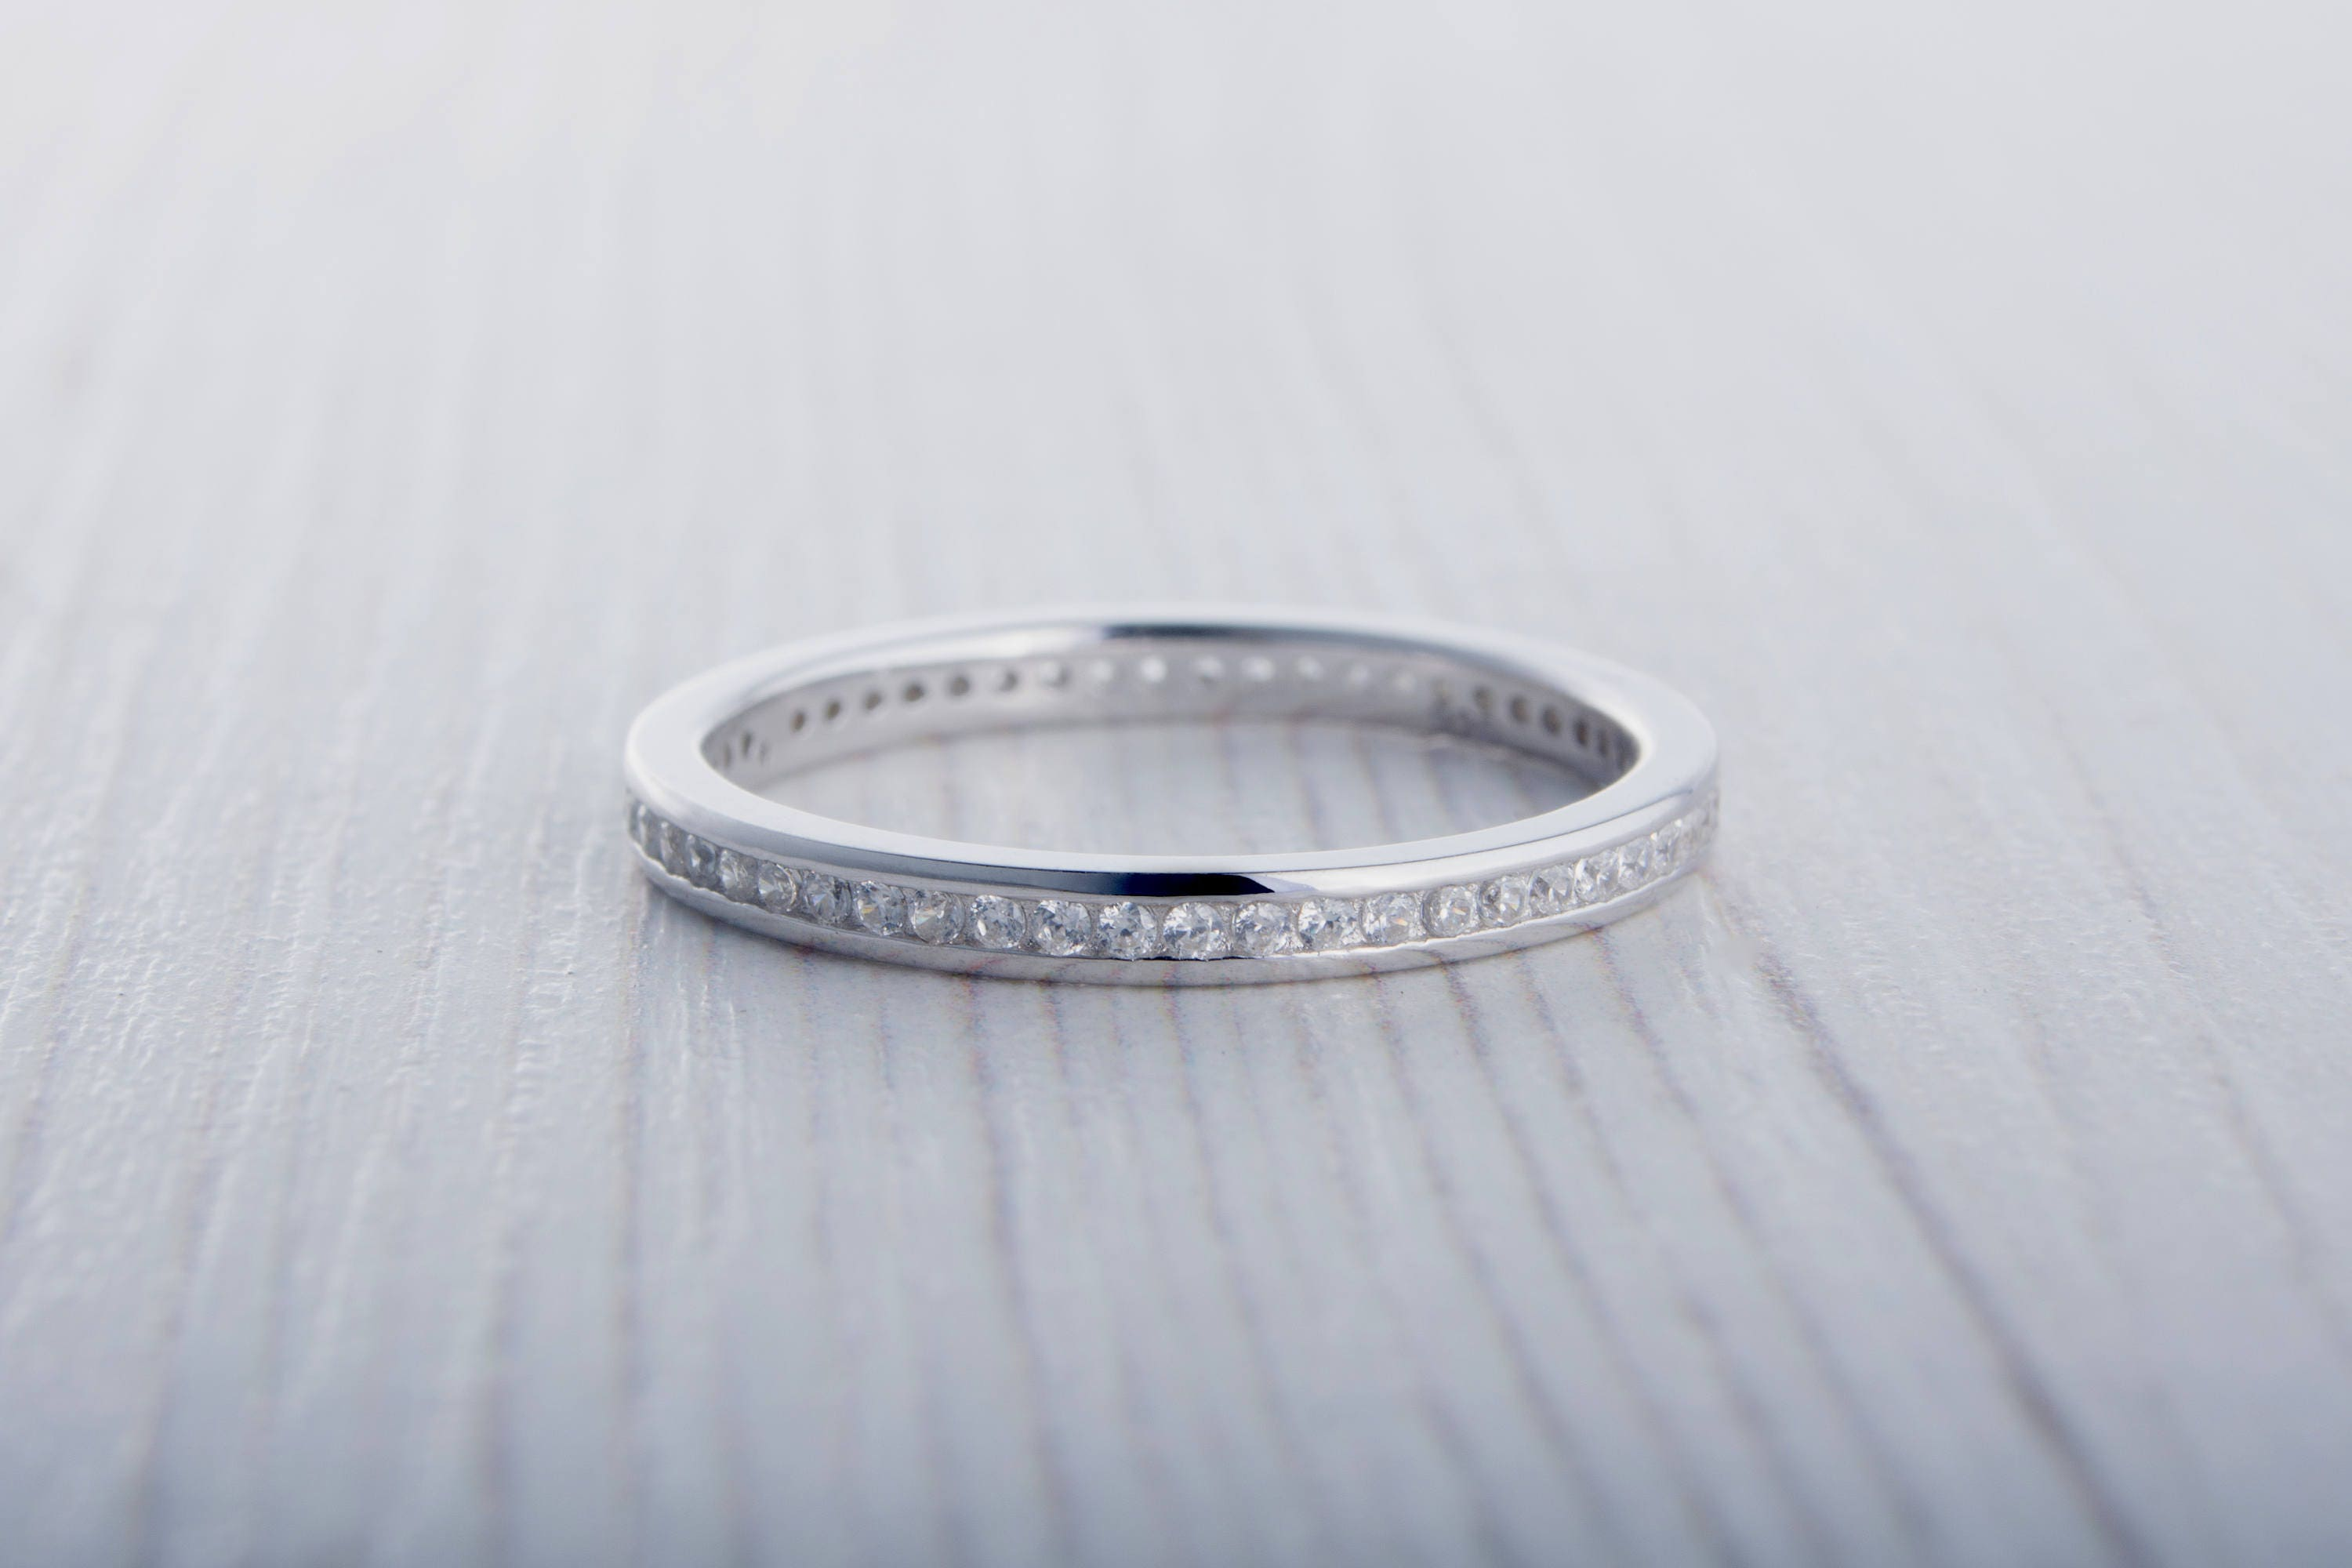 wideband rings eternity product bands diamond text wide antique quintessa b alt michael img band